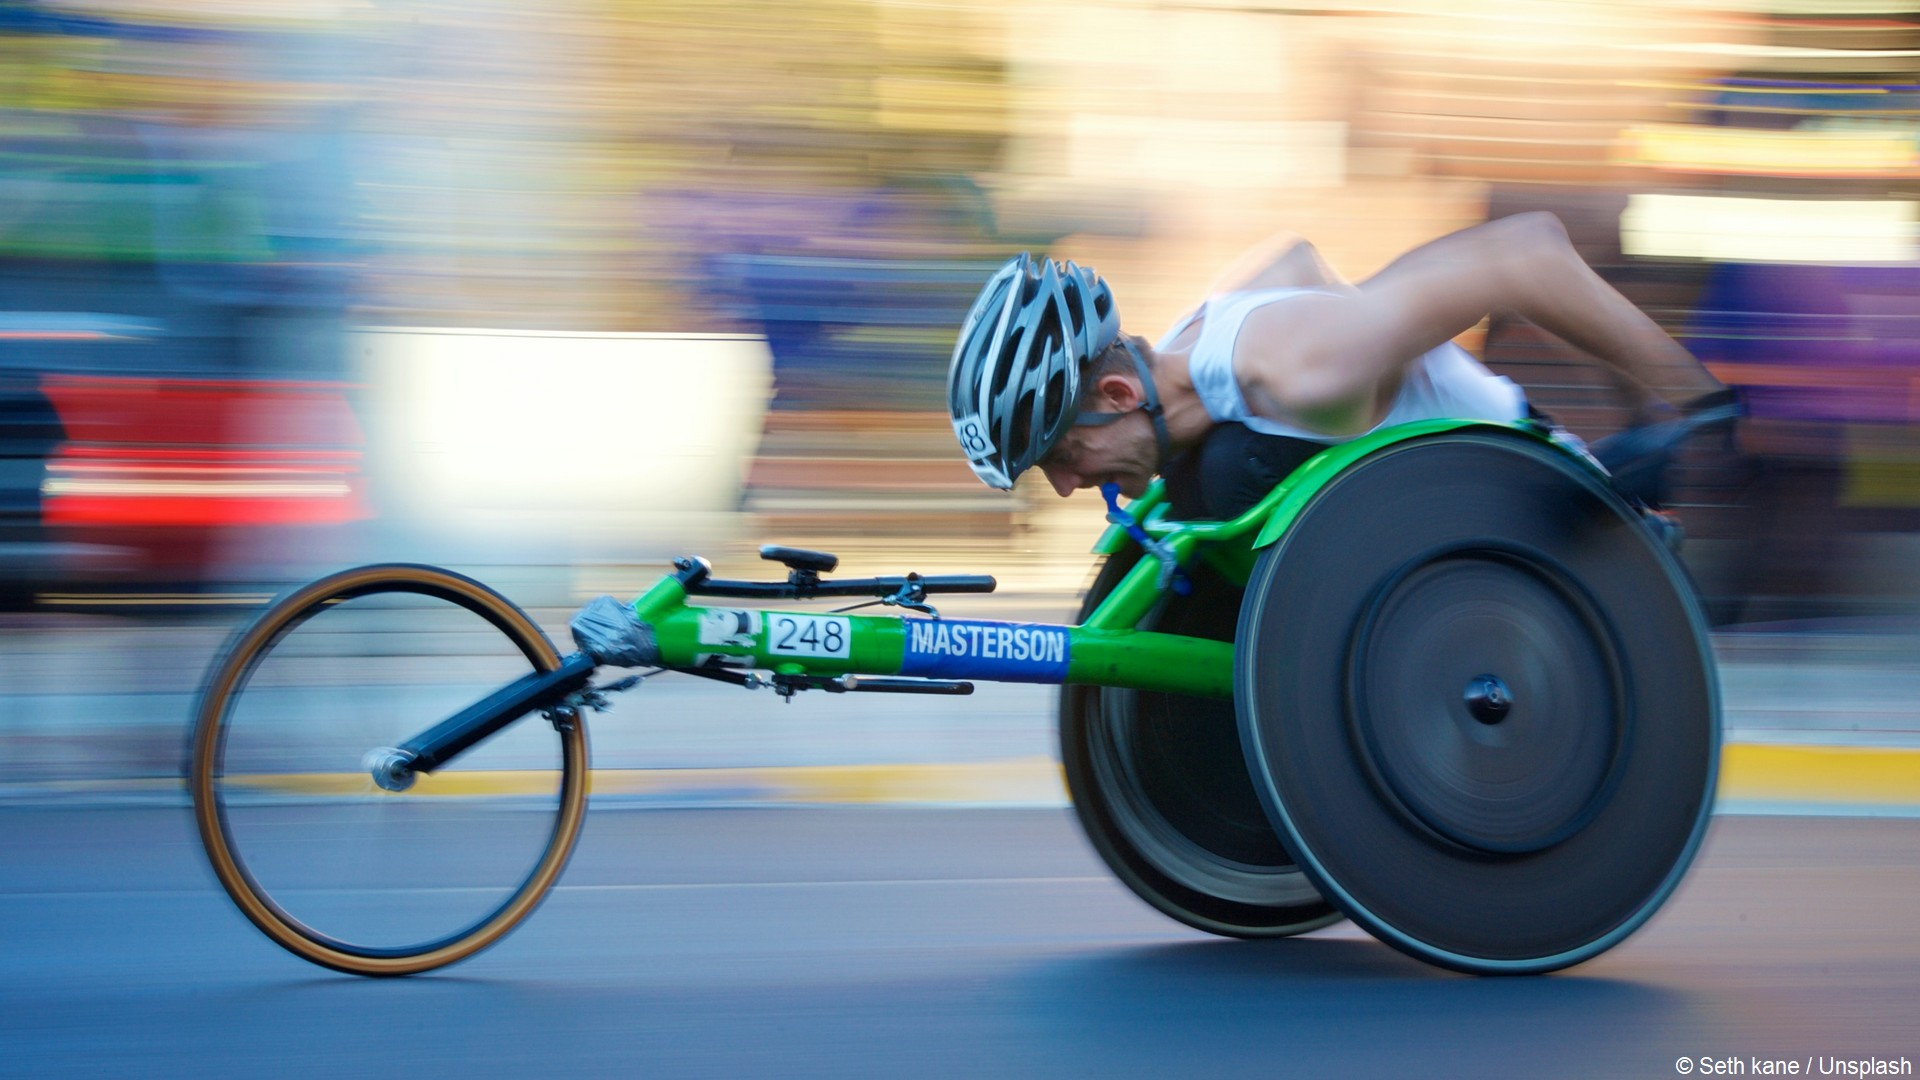 Wheelchair handisport (c) Seth kane Unsplash